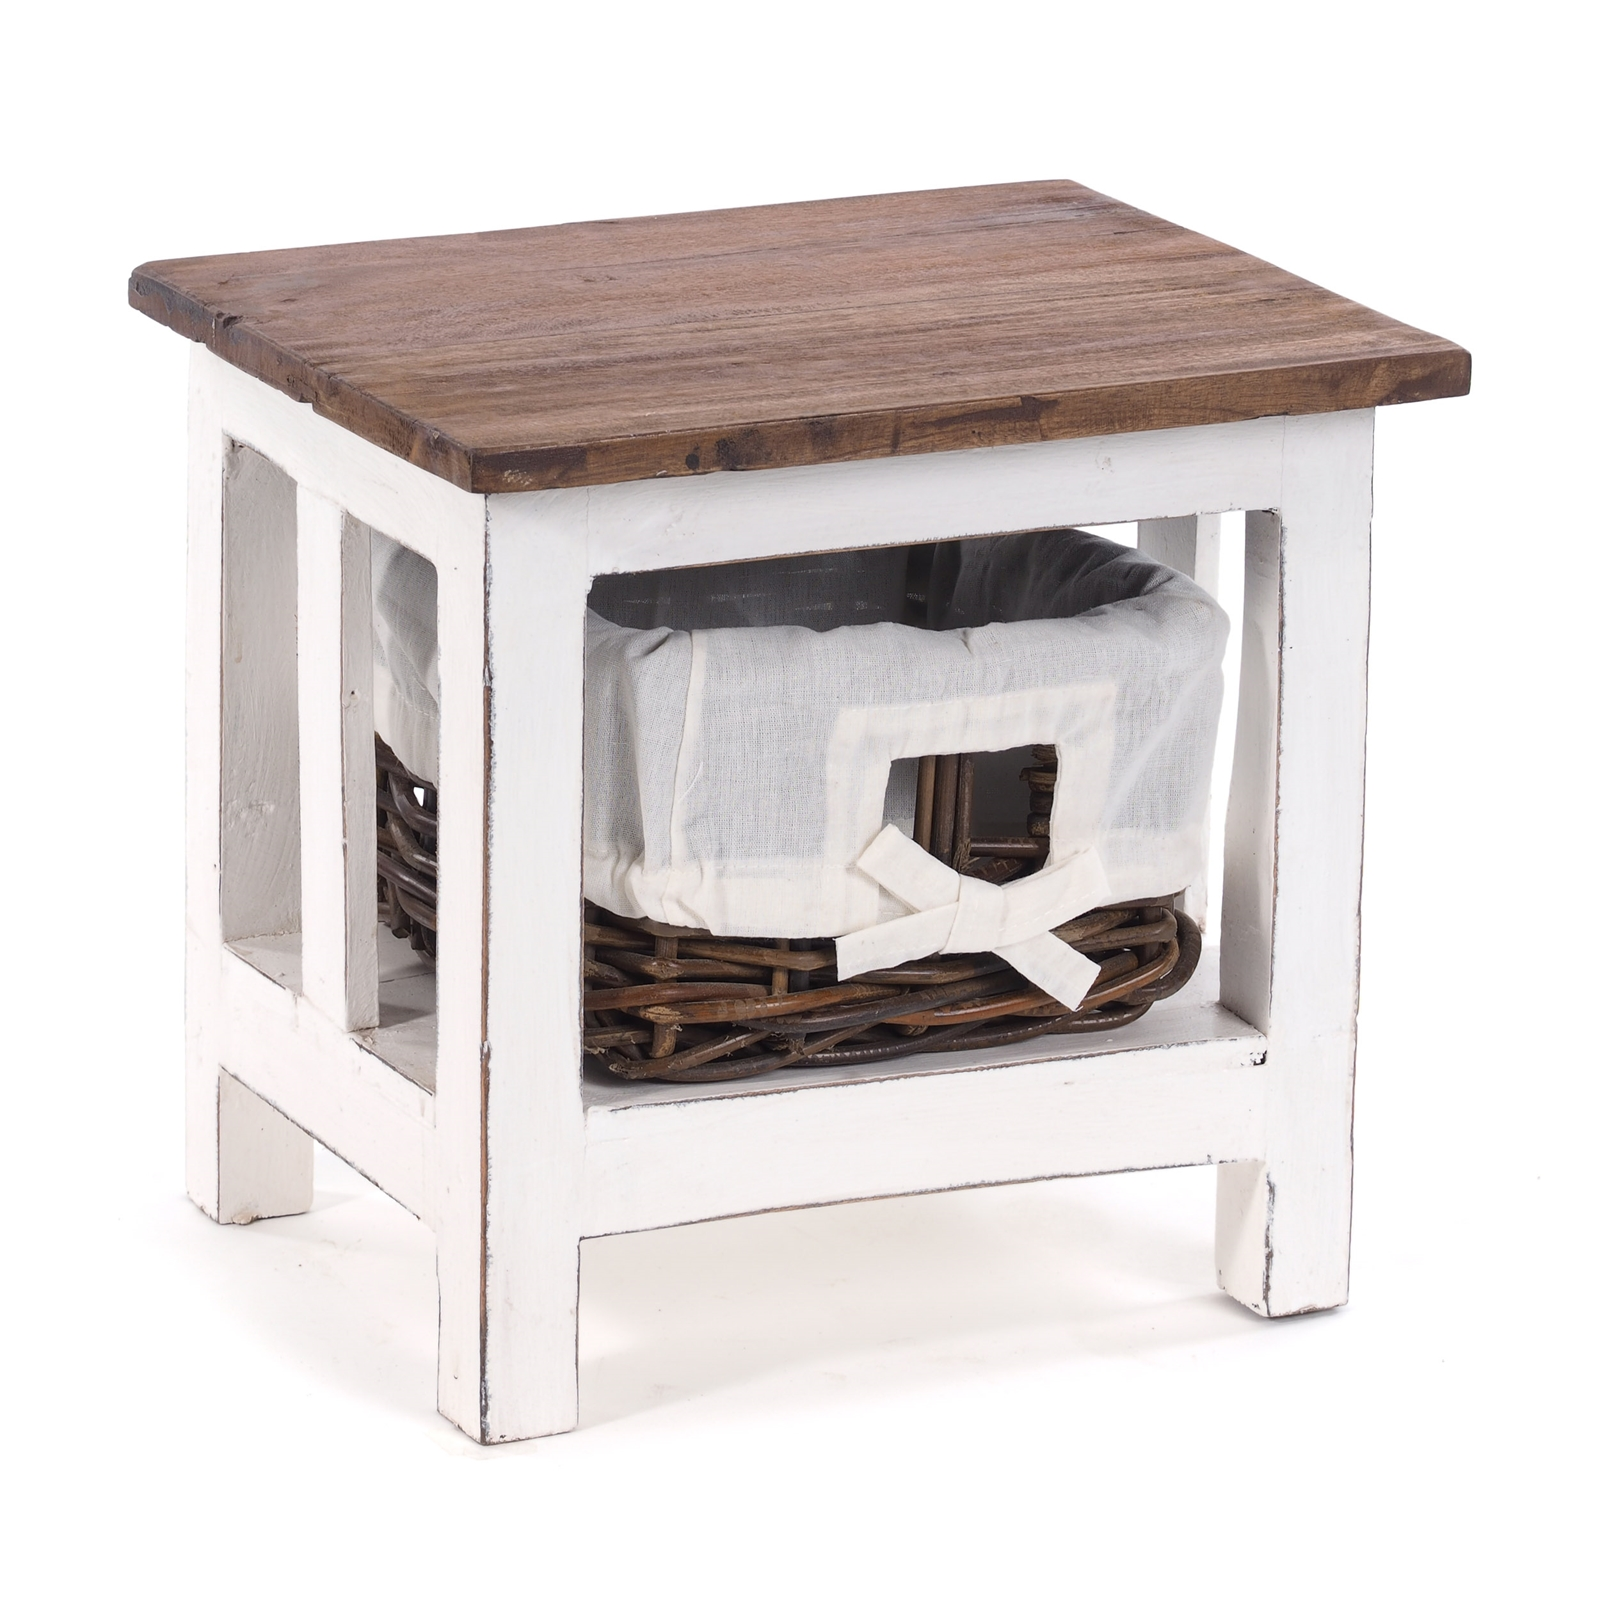 Table De Chevet Rotin 40x35x30 Cm Bois Recycle Peu Commode